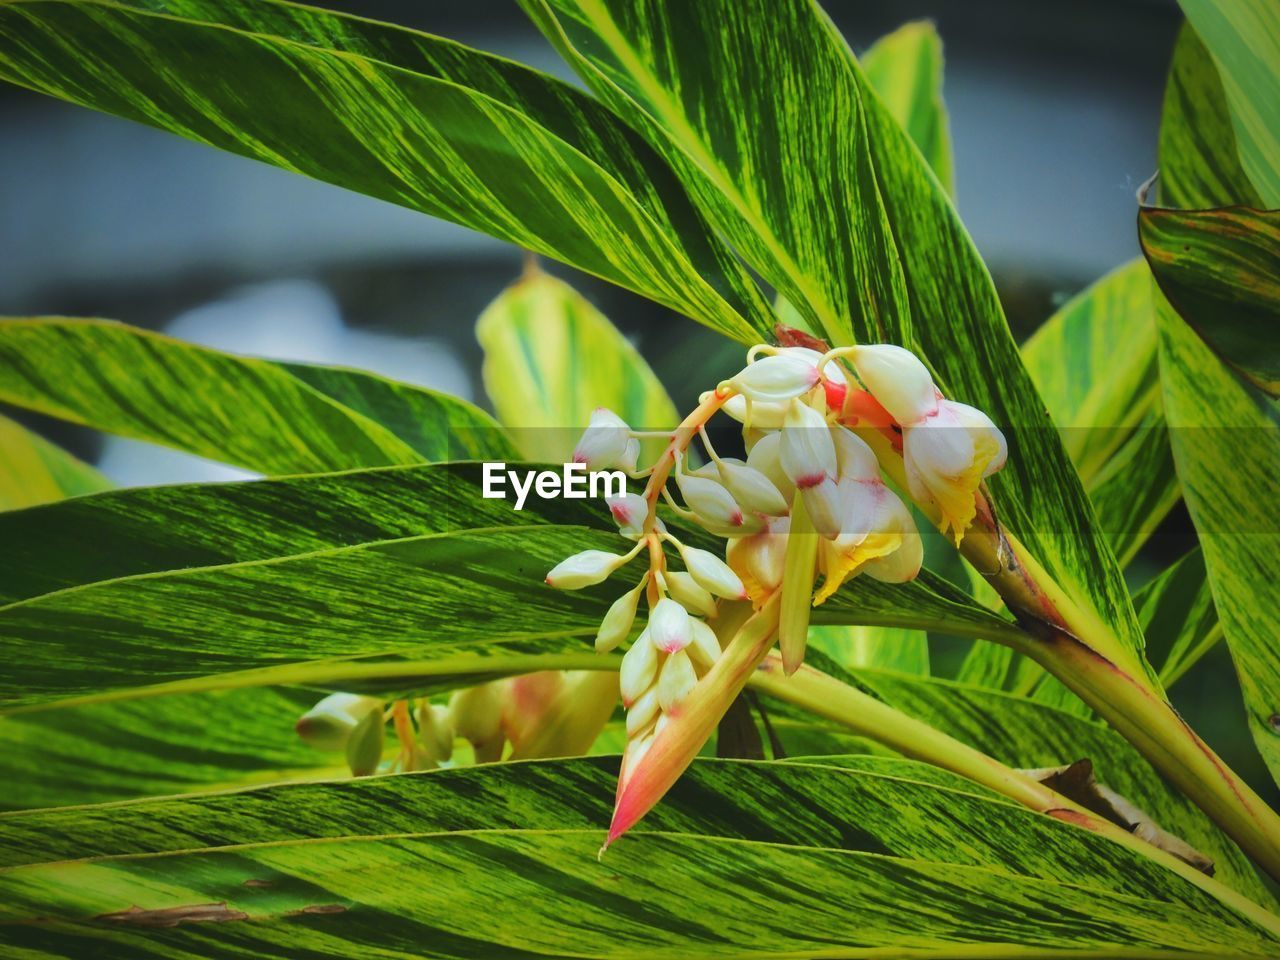 plant, growth, plant part, leaf, green color, close-up, beauty in nature, freshness, flower, nature, vulnerability, flowering plant, fragility, focus on foreground, no people, day, petal, flower head, inflorescence, white color, outdoors, pollen